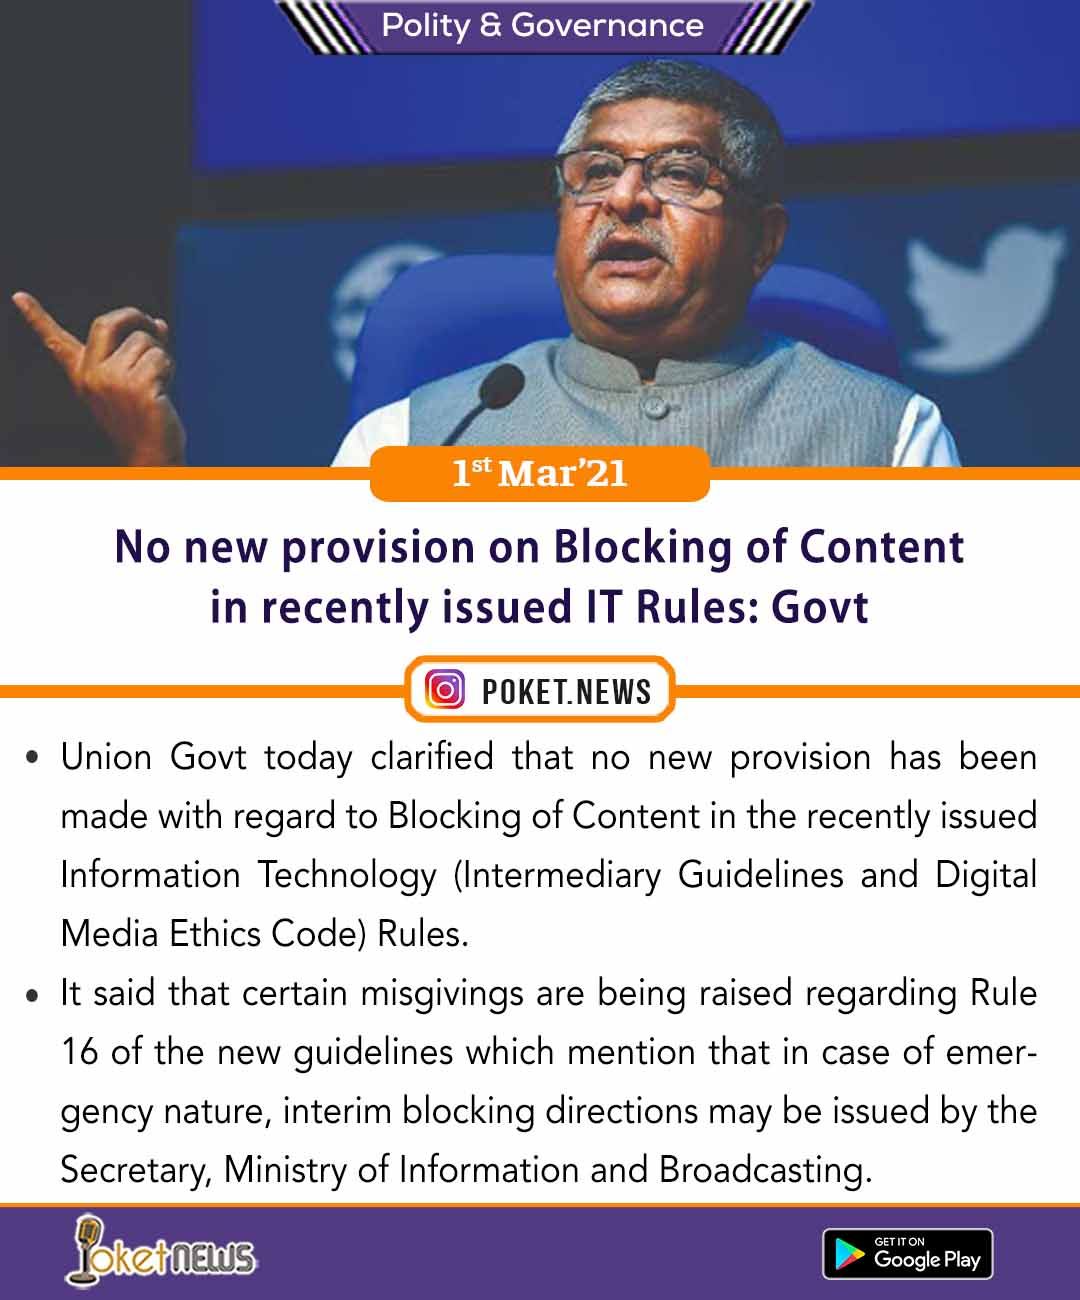 No new provision on Blocking of Content in recently issued IT Rules: Govt